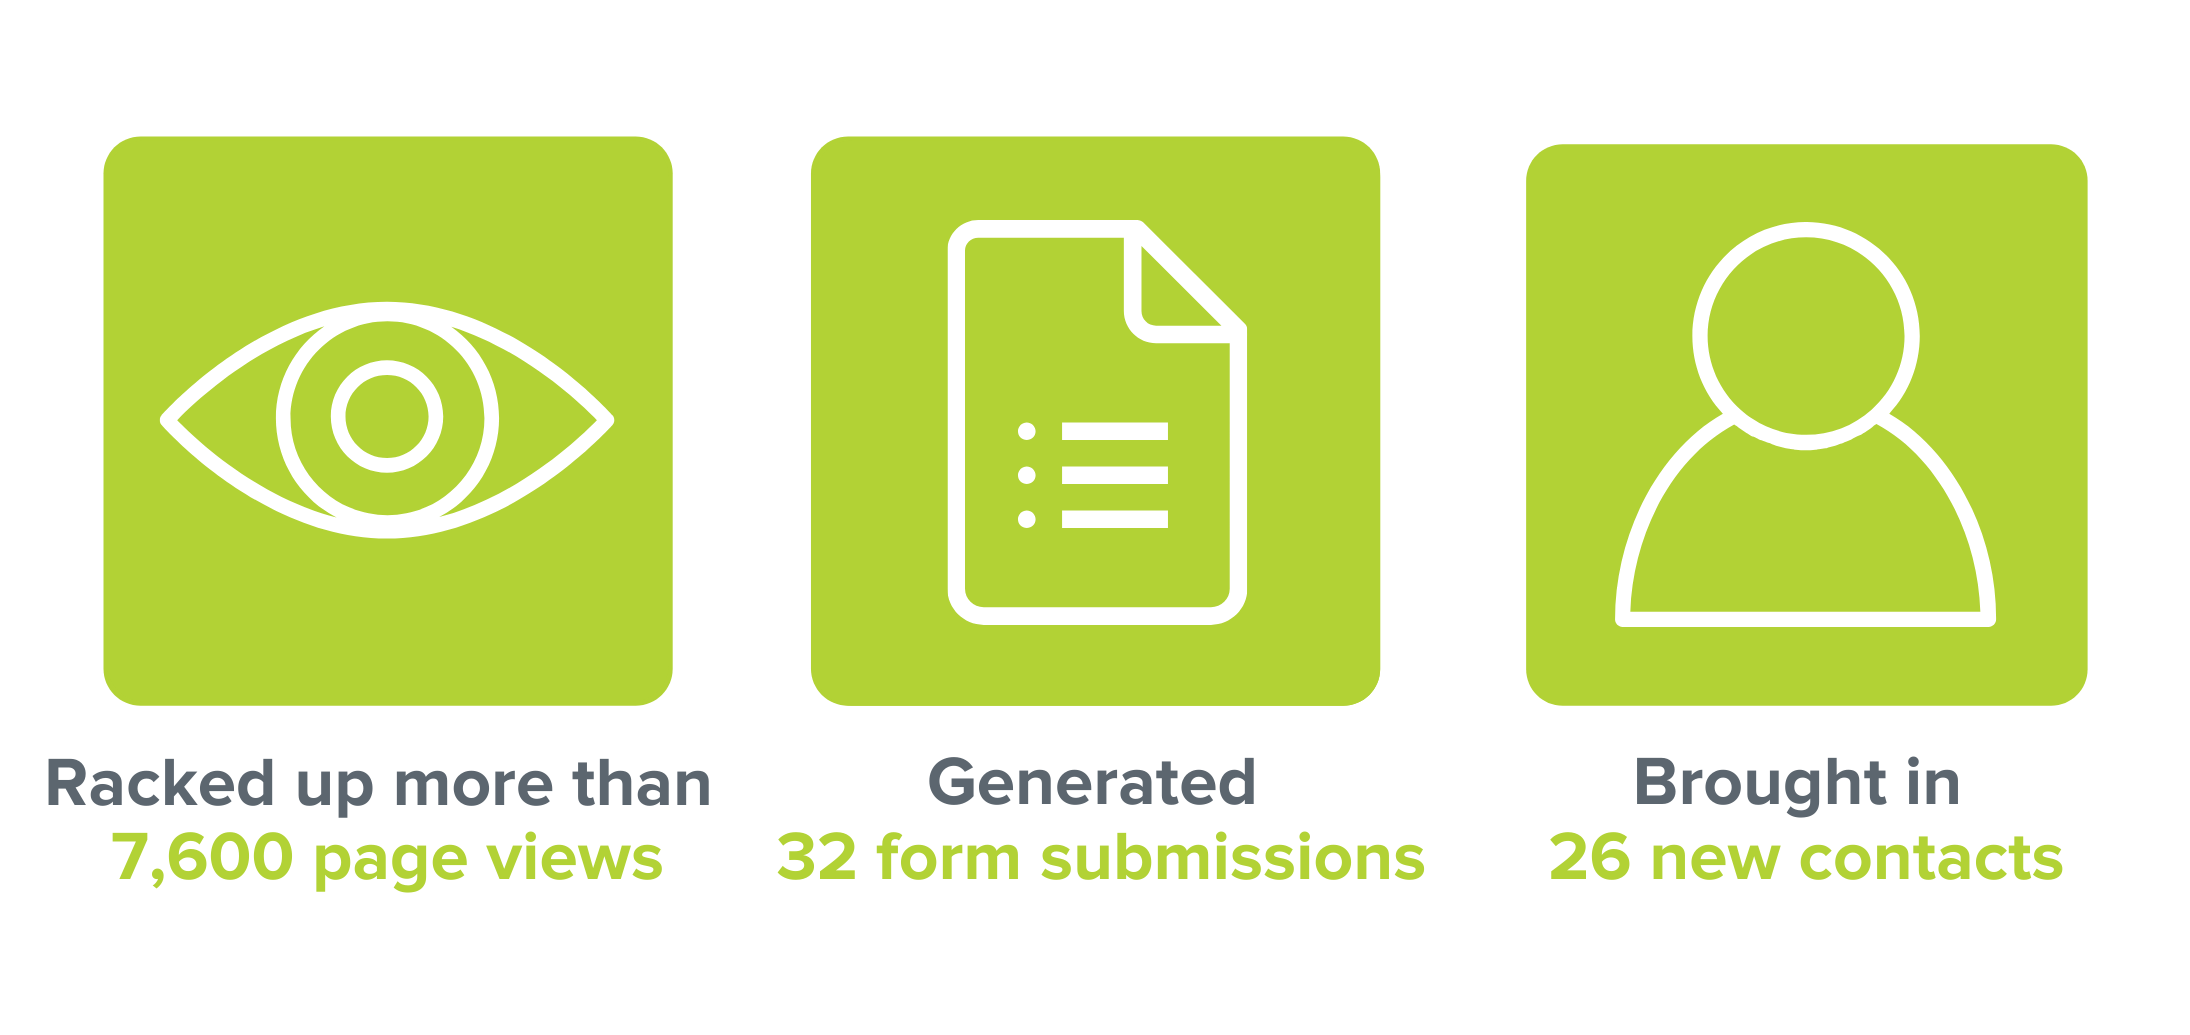 Racked up more than 7,600 page views. Generated 32 form submissions. Brought in 26 new contacts.